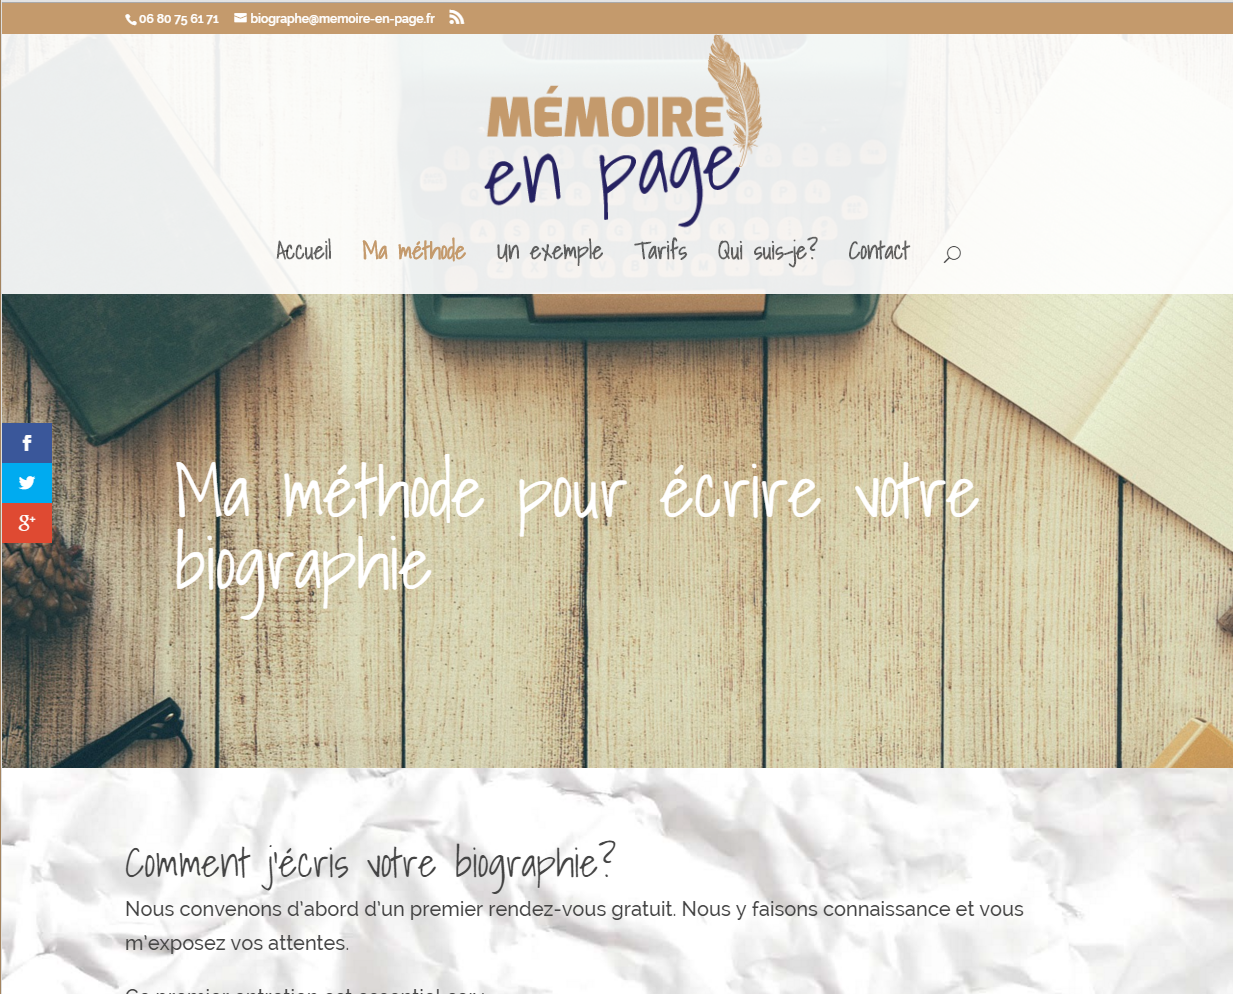 Cr ation de site web m moire en page a votre id e for Idee de site internet